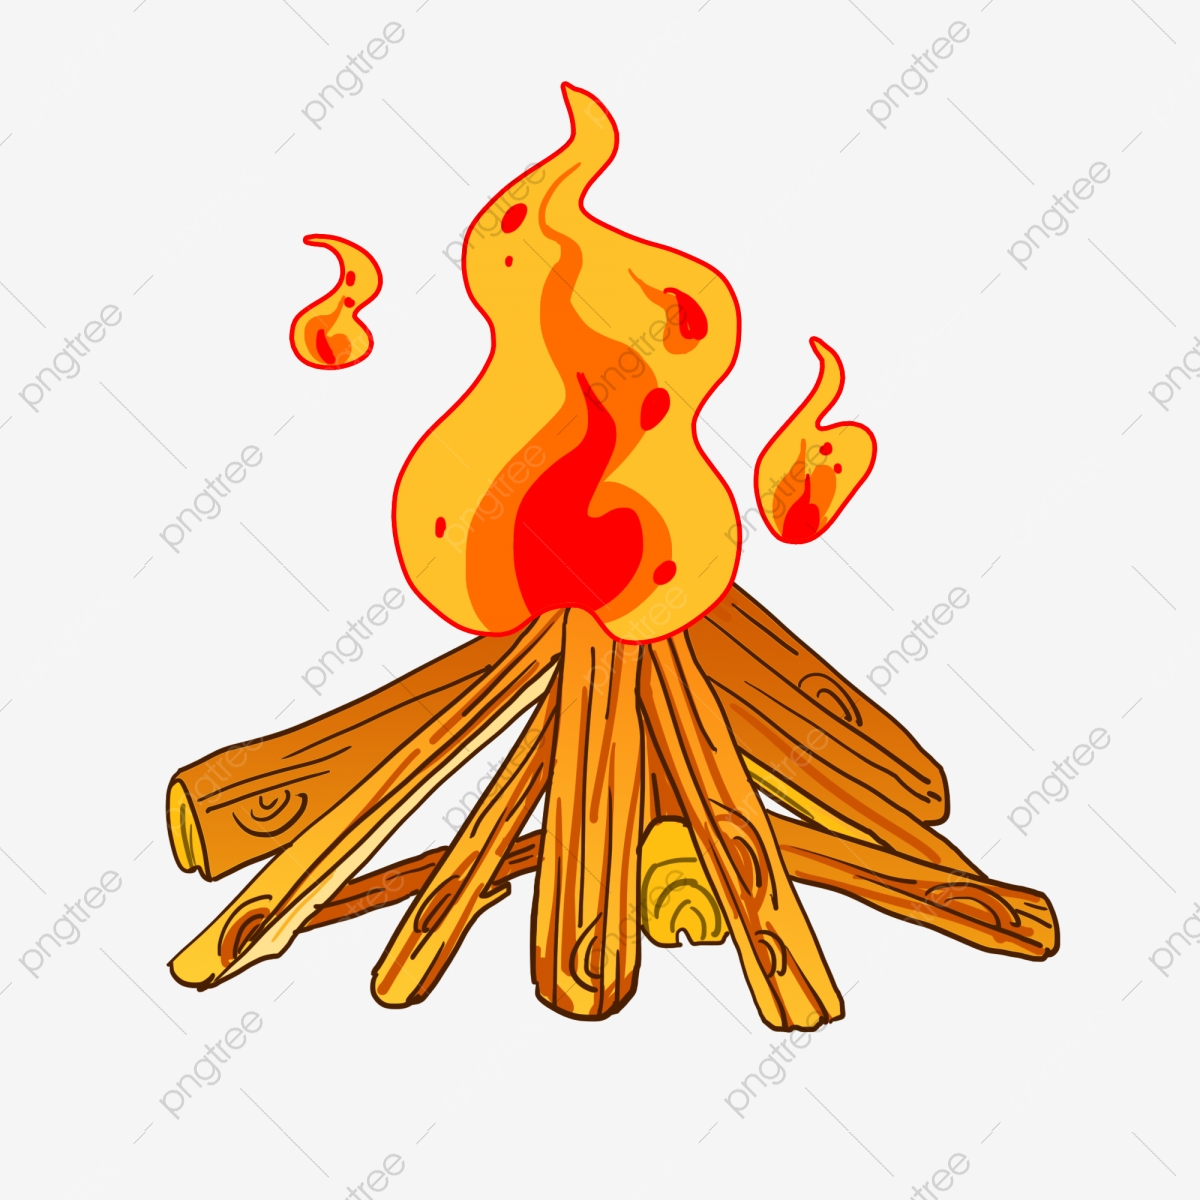 Bonfire clipart painted. Warm party yellow flame